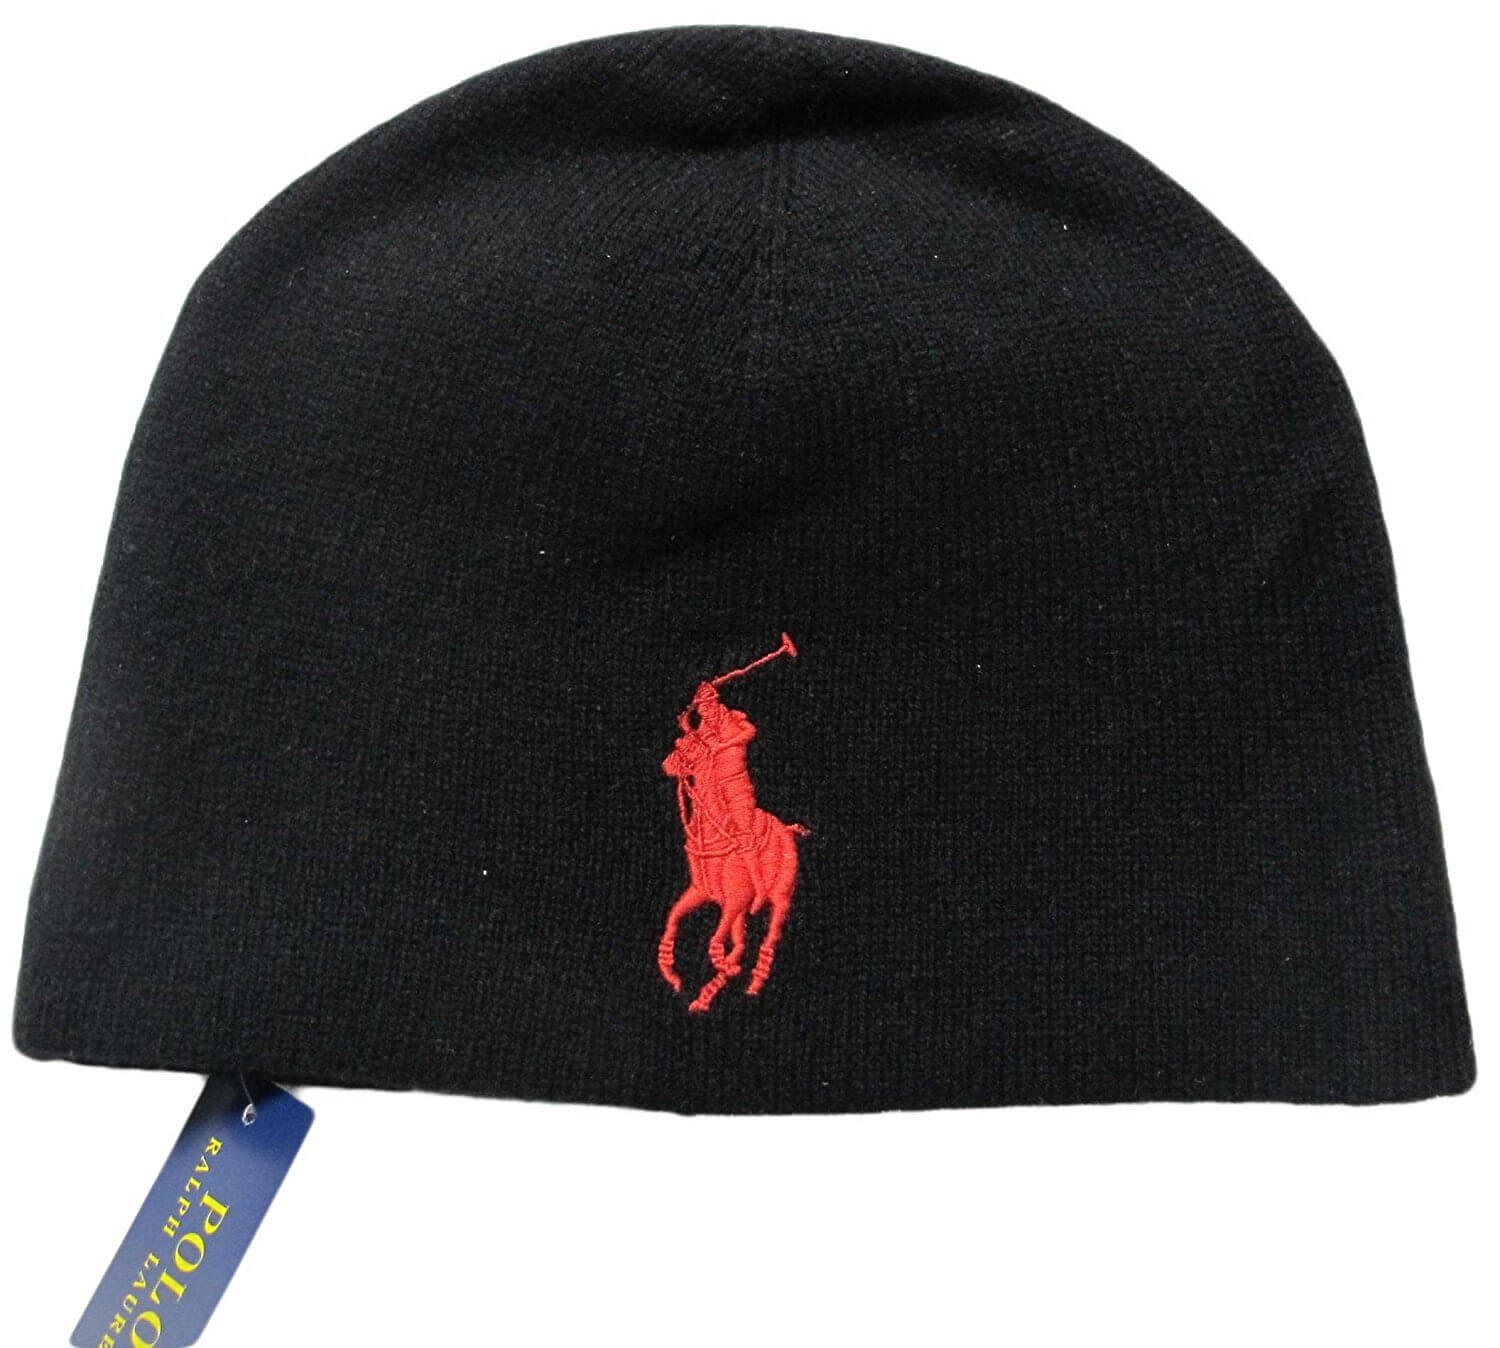 POLO RALPH LAUREN ニット帽 Big Pony Merino Wool Cap